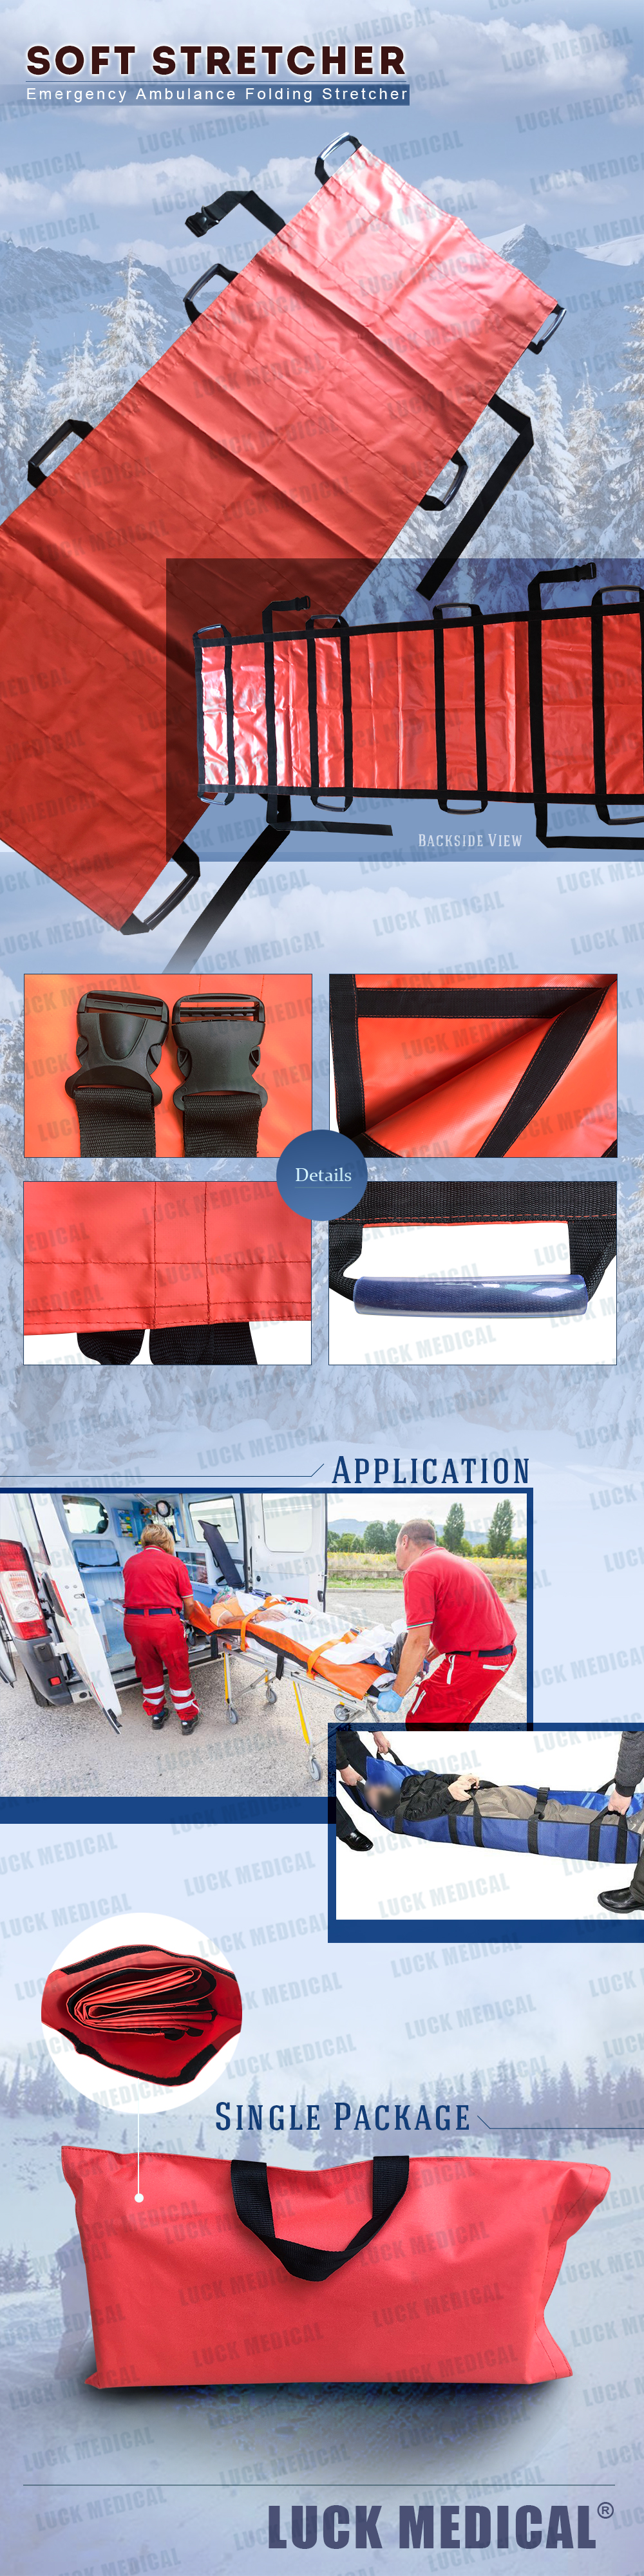 Carry bag-Portable Soft stretcher Folding Stretcher Impervious Emergency stretcher